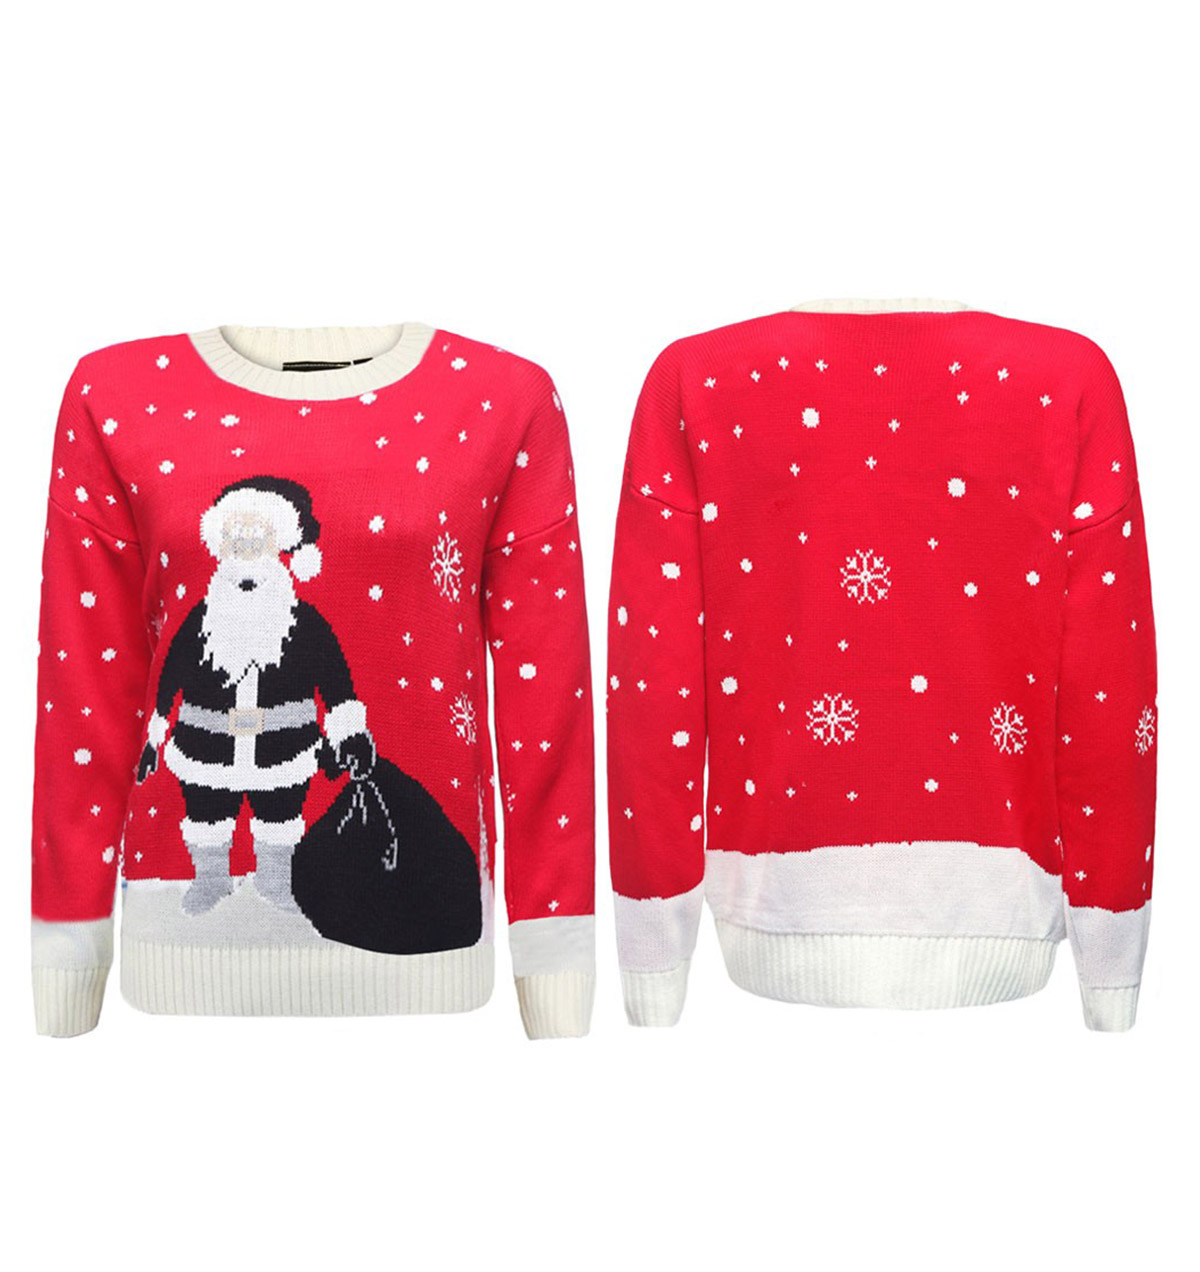 36245ecd09e Ugly Black Santa Christmas Sweater On Red - Ugly Christmas Sweaters ...